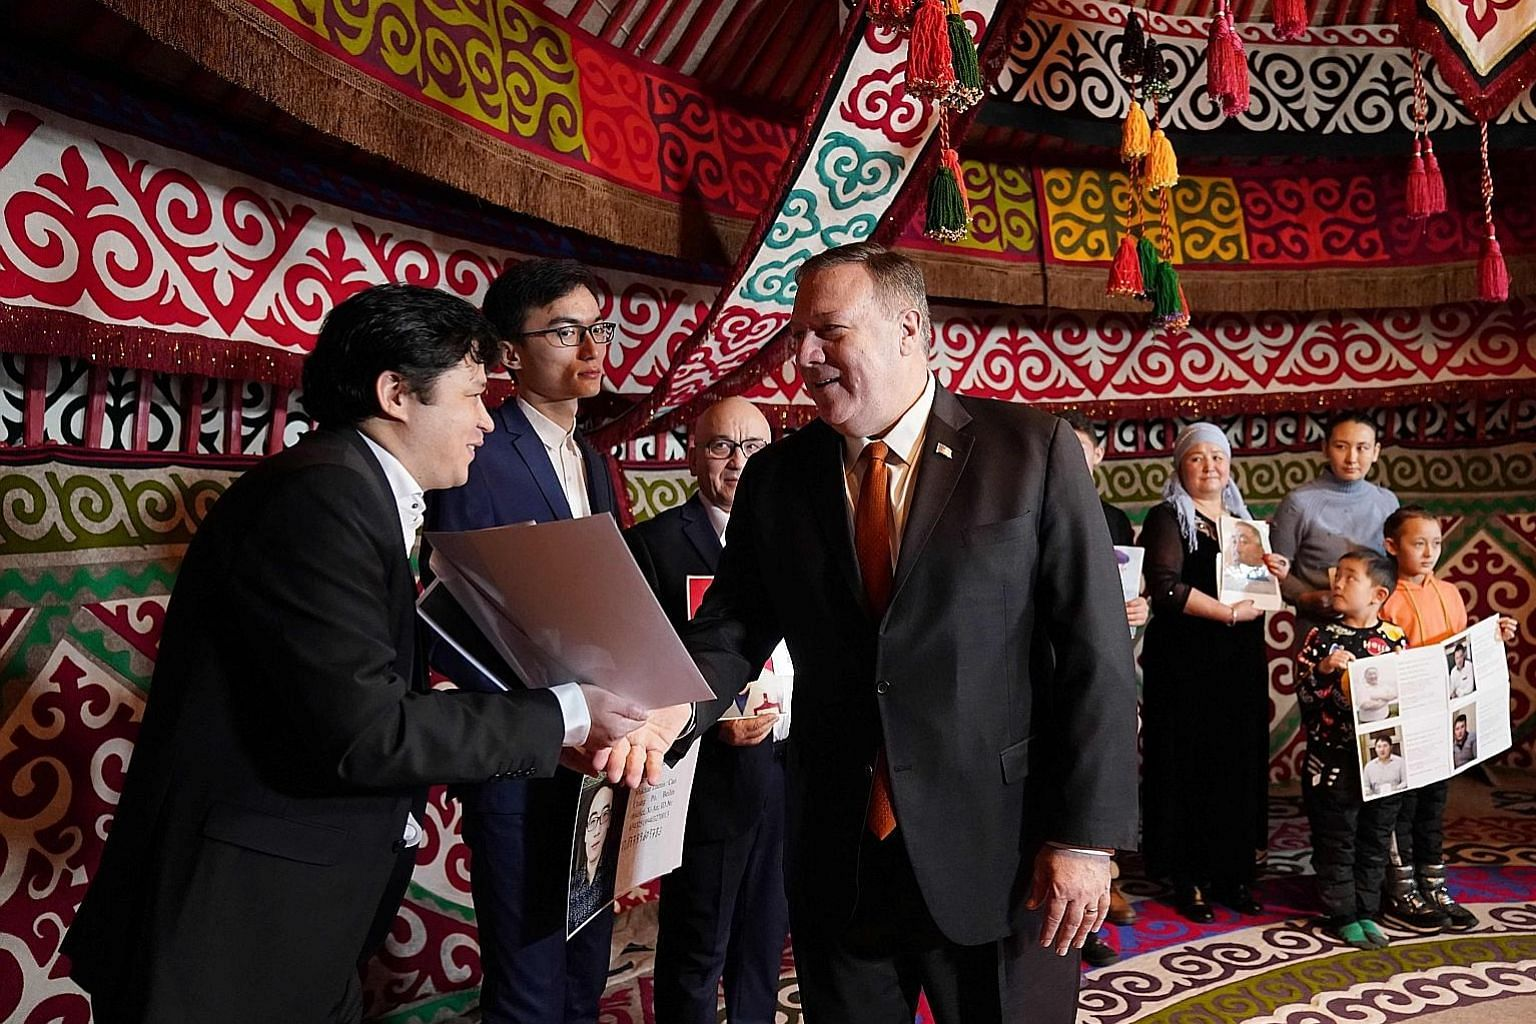 Kazakh Foreign Minister Mukhtar Tleuberdi (above) focused on economic and security cooperation in his talks with Mr Pompeo. US Secretary of State Mike Pompeo meeting Kazakh citizens in a yurt at the US Ambassador's residence in Nur-Sultan yesterday.